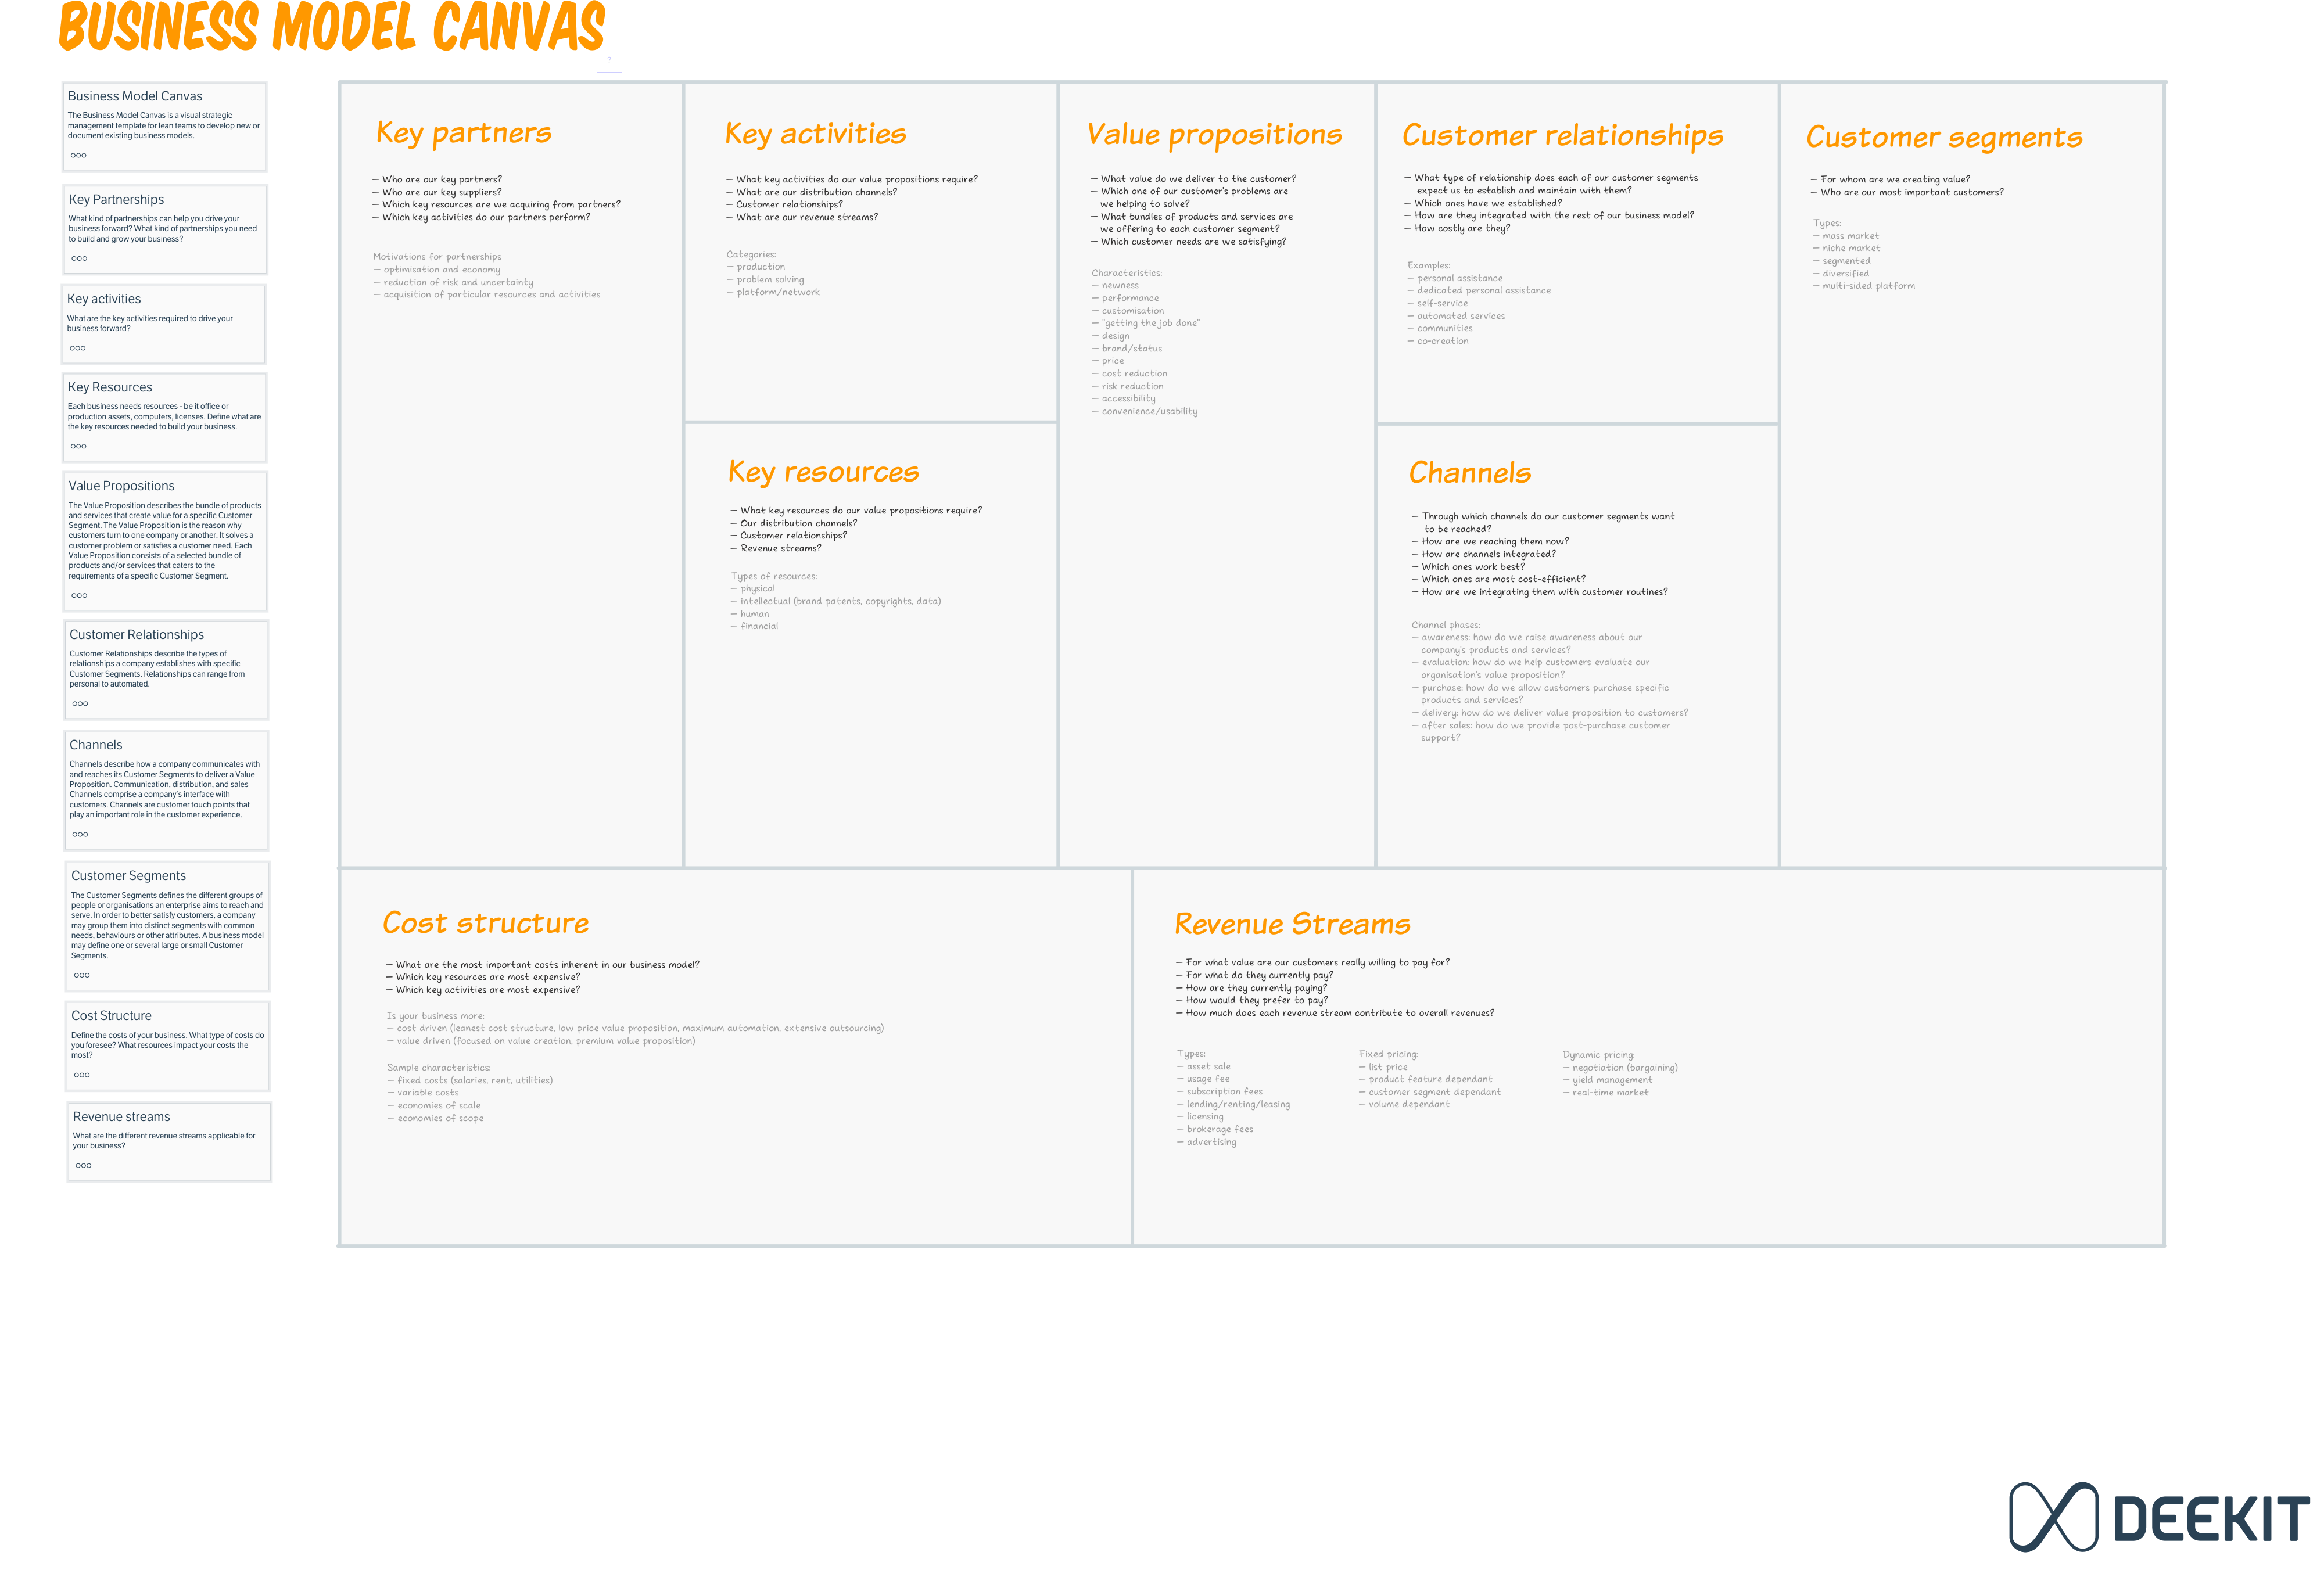 Free business model canvas template for visual strategic management free business model canvas template for visual strategic management and planning for lean teams to develop new or document existing business models accmission Gallery